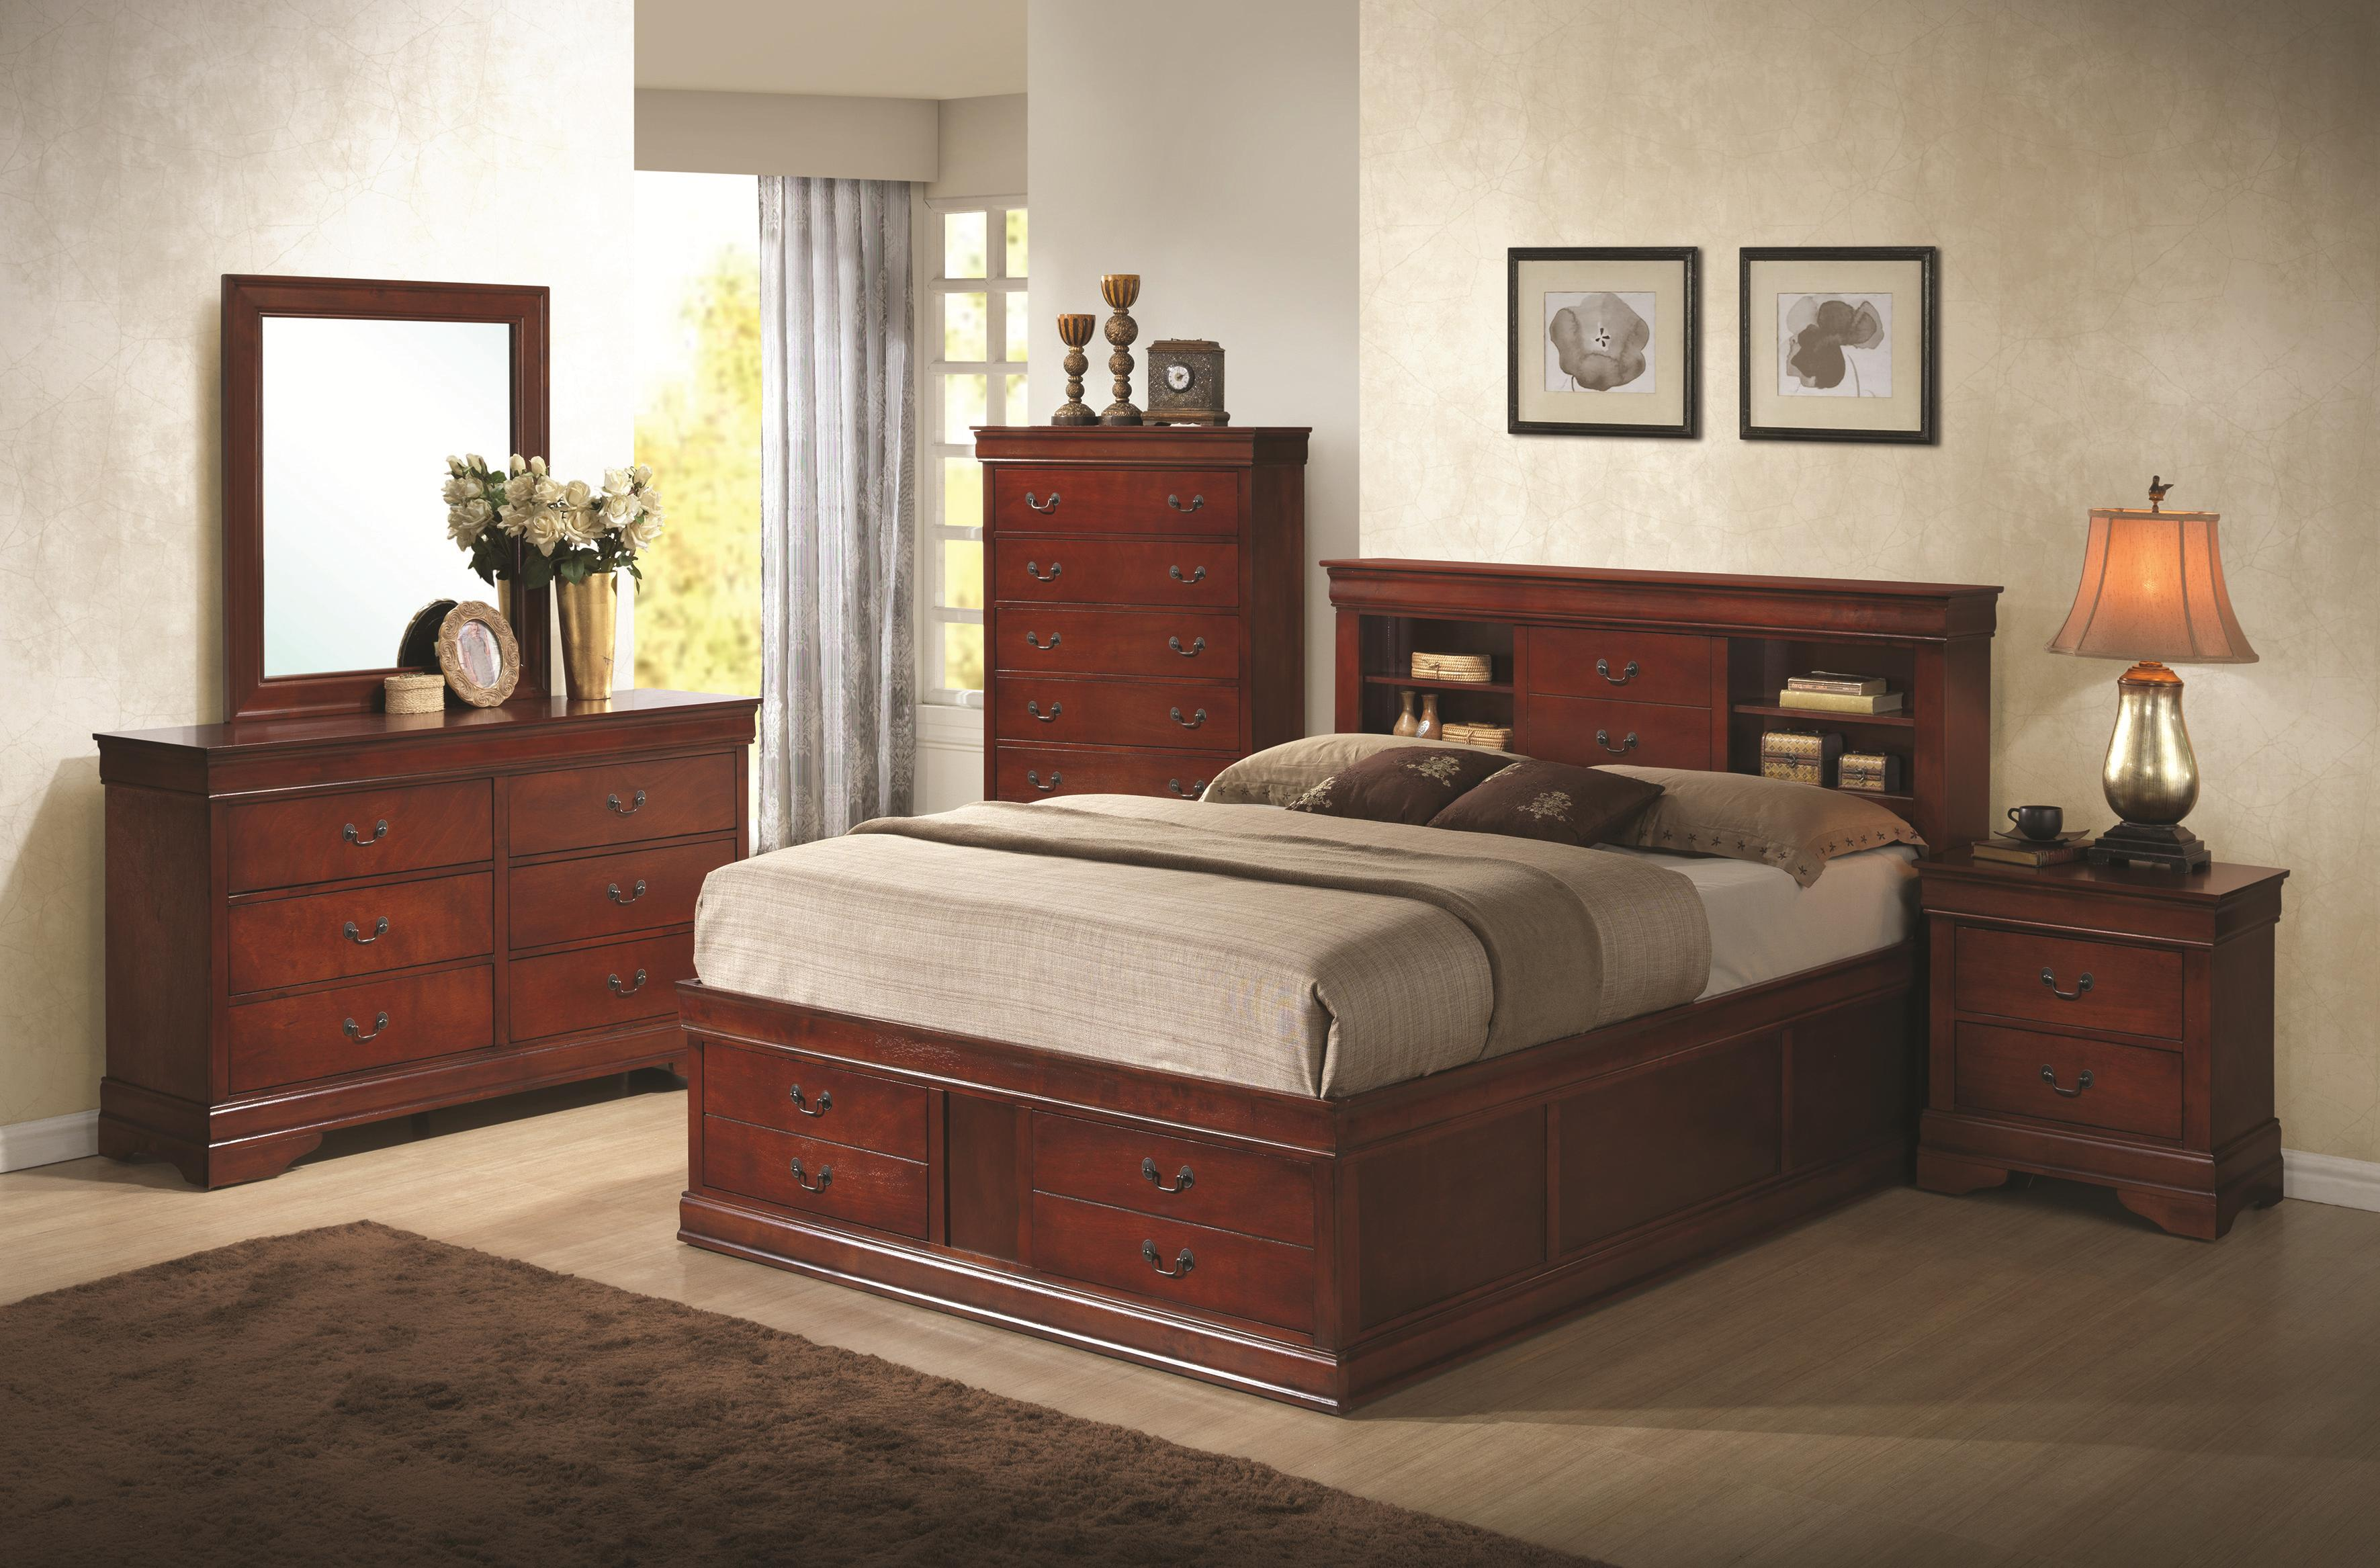 Coaster Louis Philippe 203971Q Queen Sleigh Bed | Northeast Factory ...